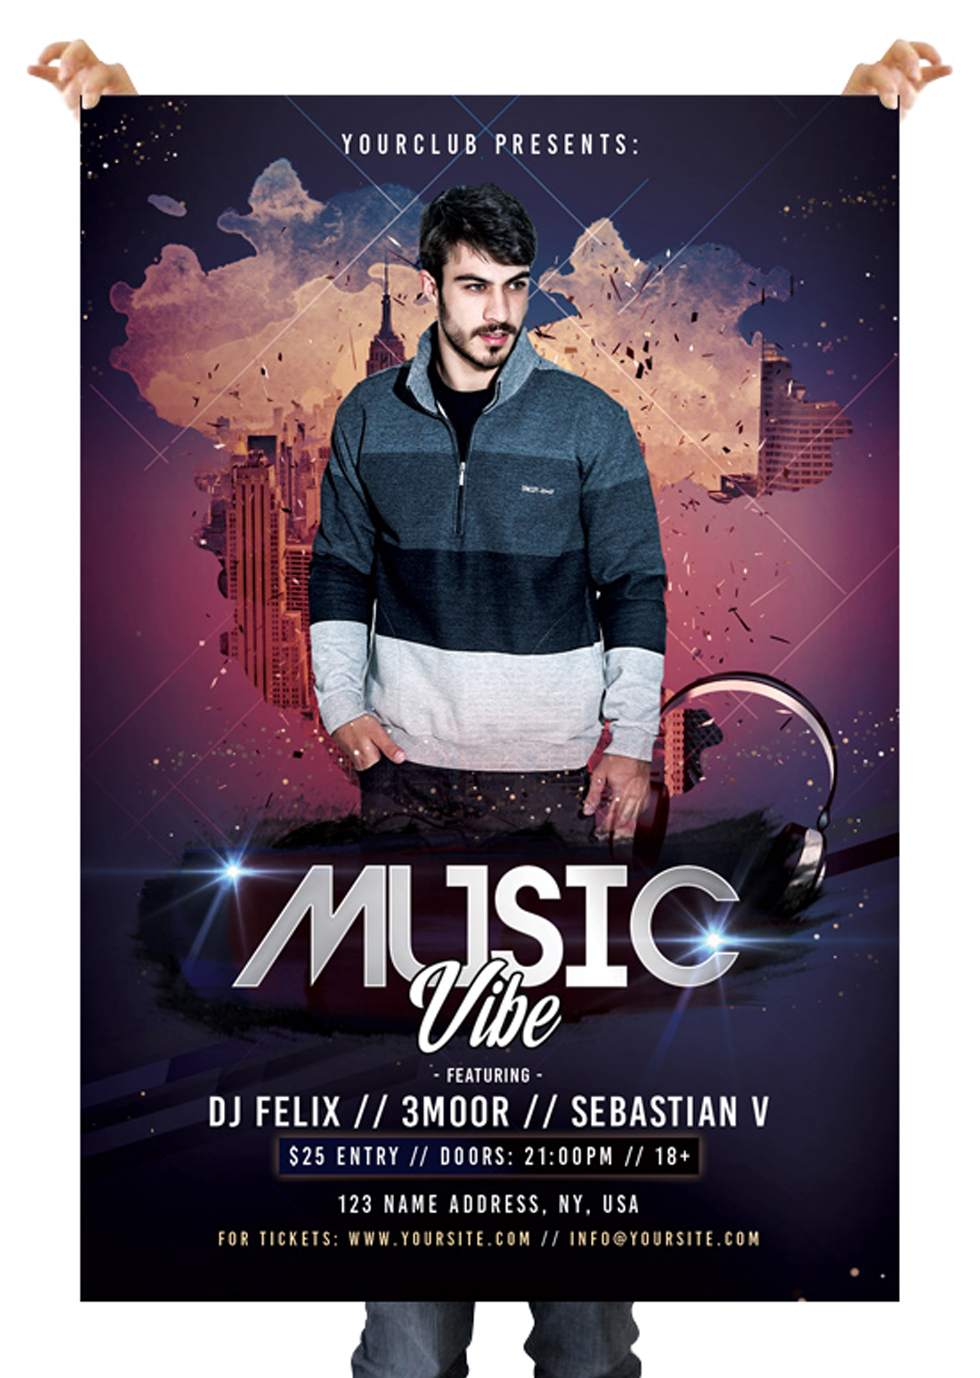 Music Vibe – Free PSD Flyer Template